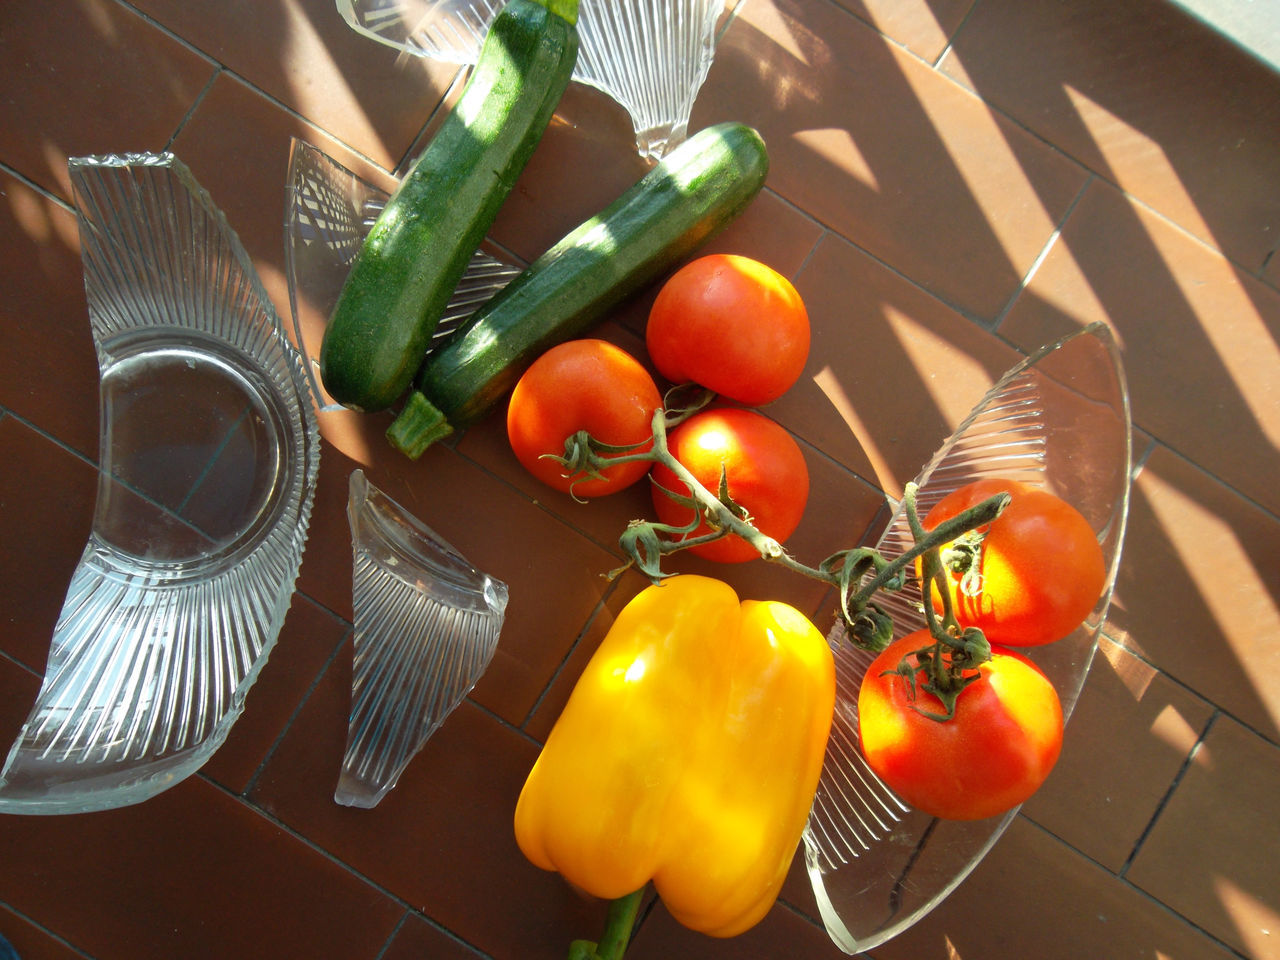 Quando hai le mani di pattona... sig ArtWork Break - Fruit Dish Courgette Crash Crumble Day Food Food And Drink Freshness Fruit Dish Healthy Eating Indoors  Ingredient Mypointofview Naturelovers No People Pepper Tomatoes Vegetables Vegetables Of EyeEm Vegetables On Floor Vegetarian Food Yellow